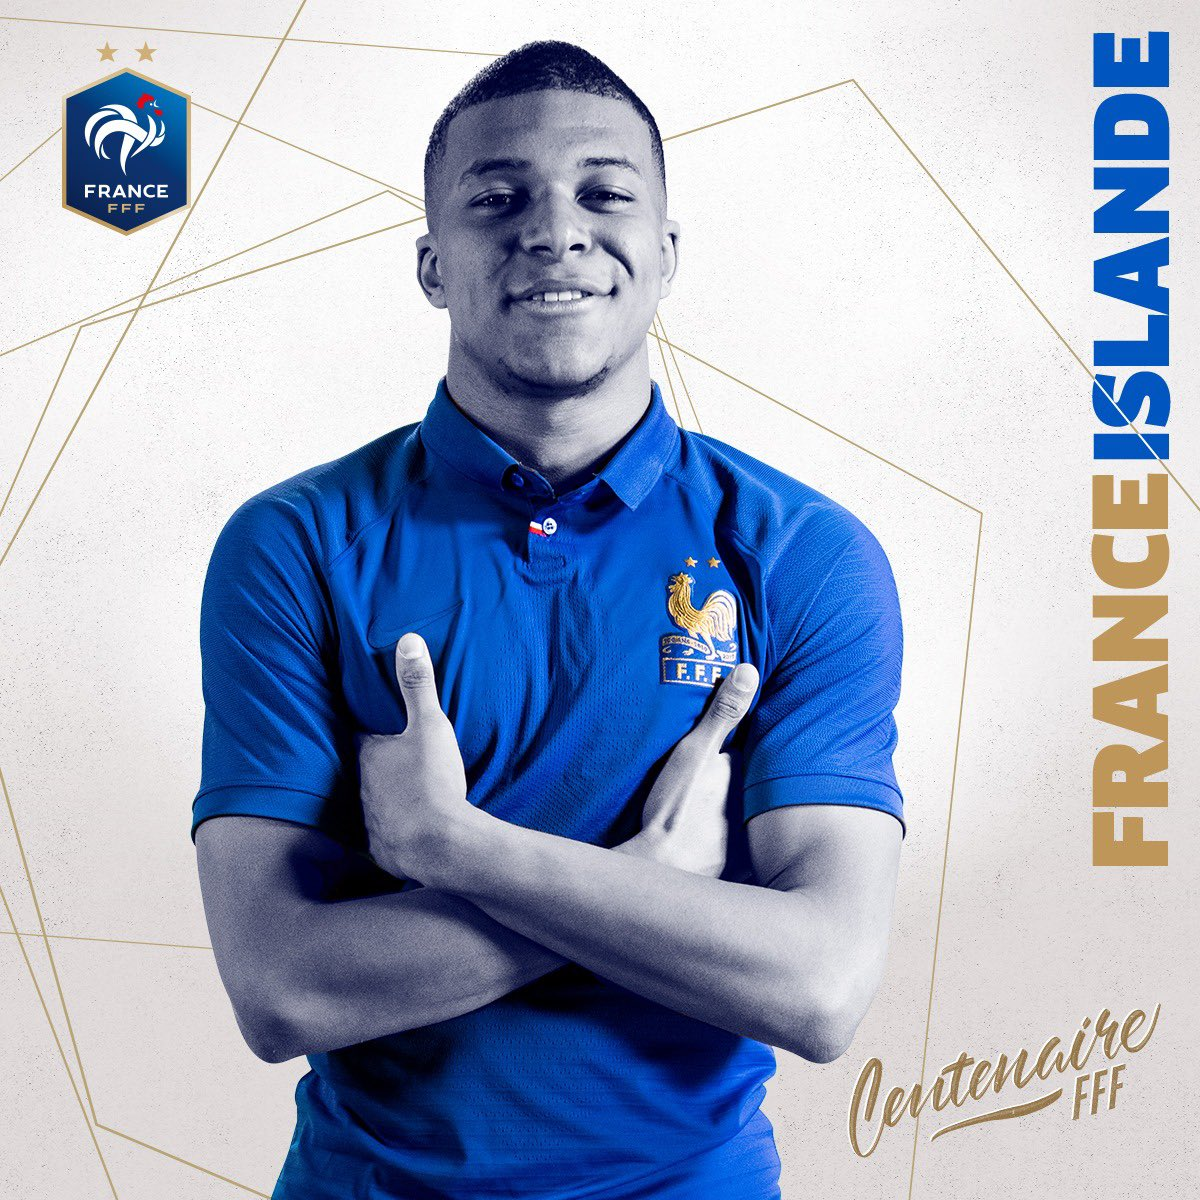 maillot collector 100 ans France MBappe